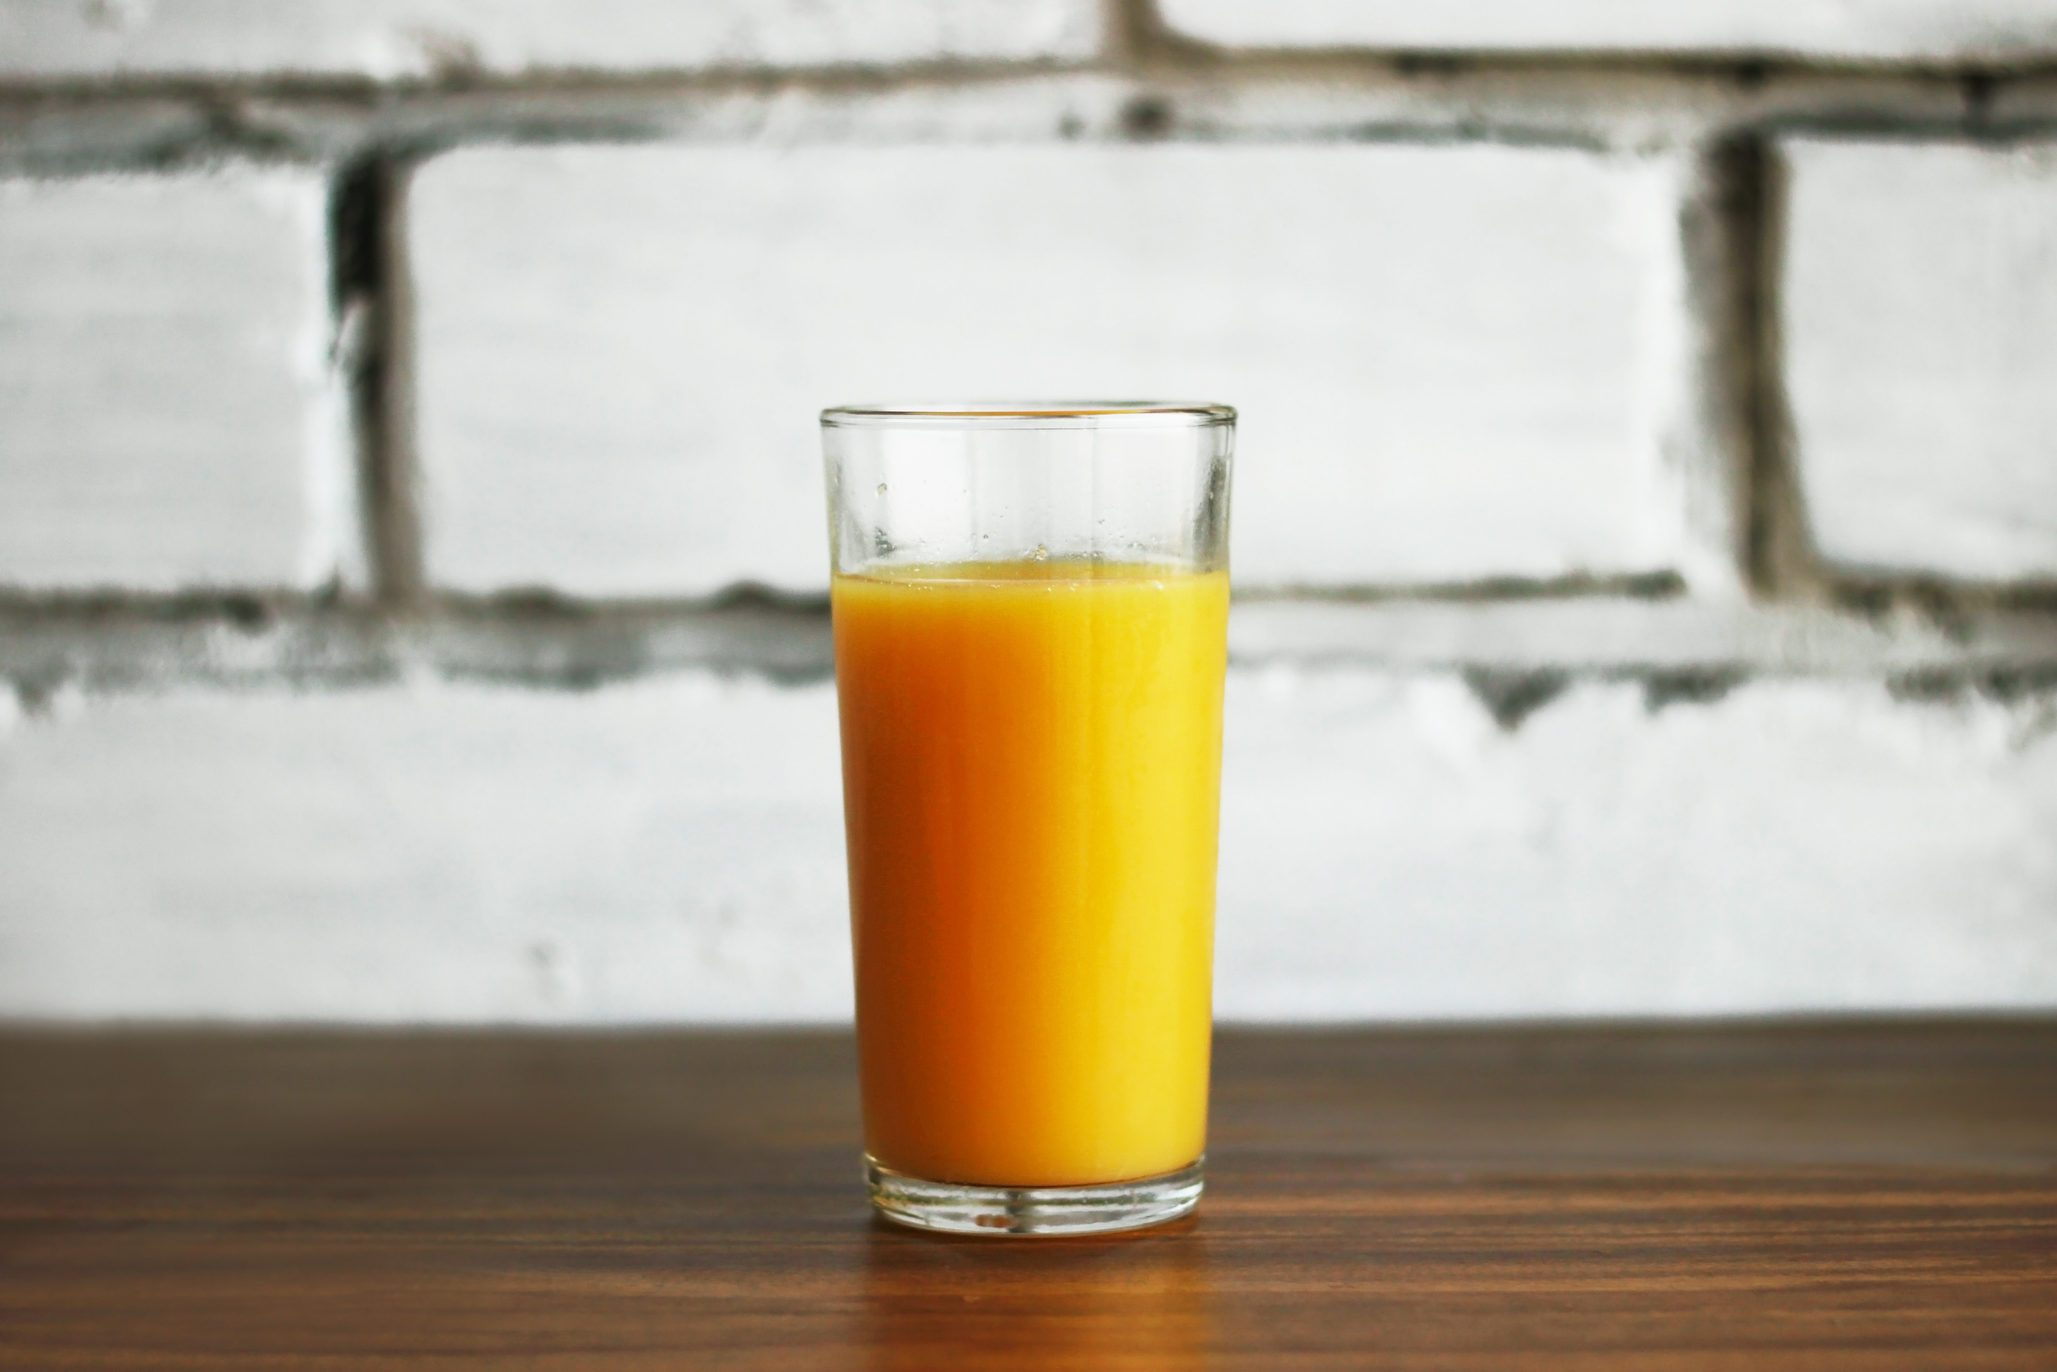 fresh orange juice in a glass on a brick wall background in a loft style